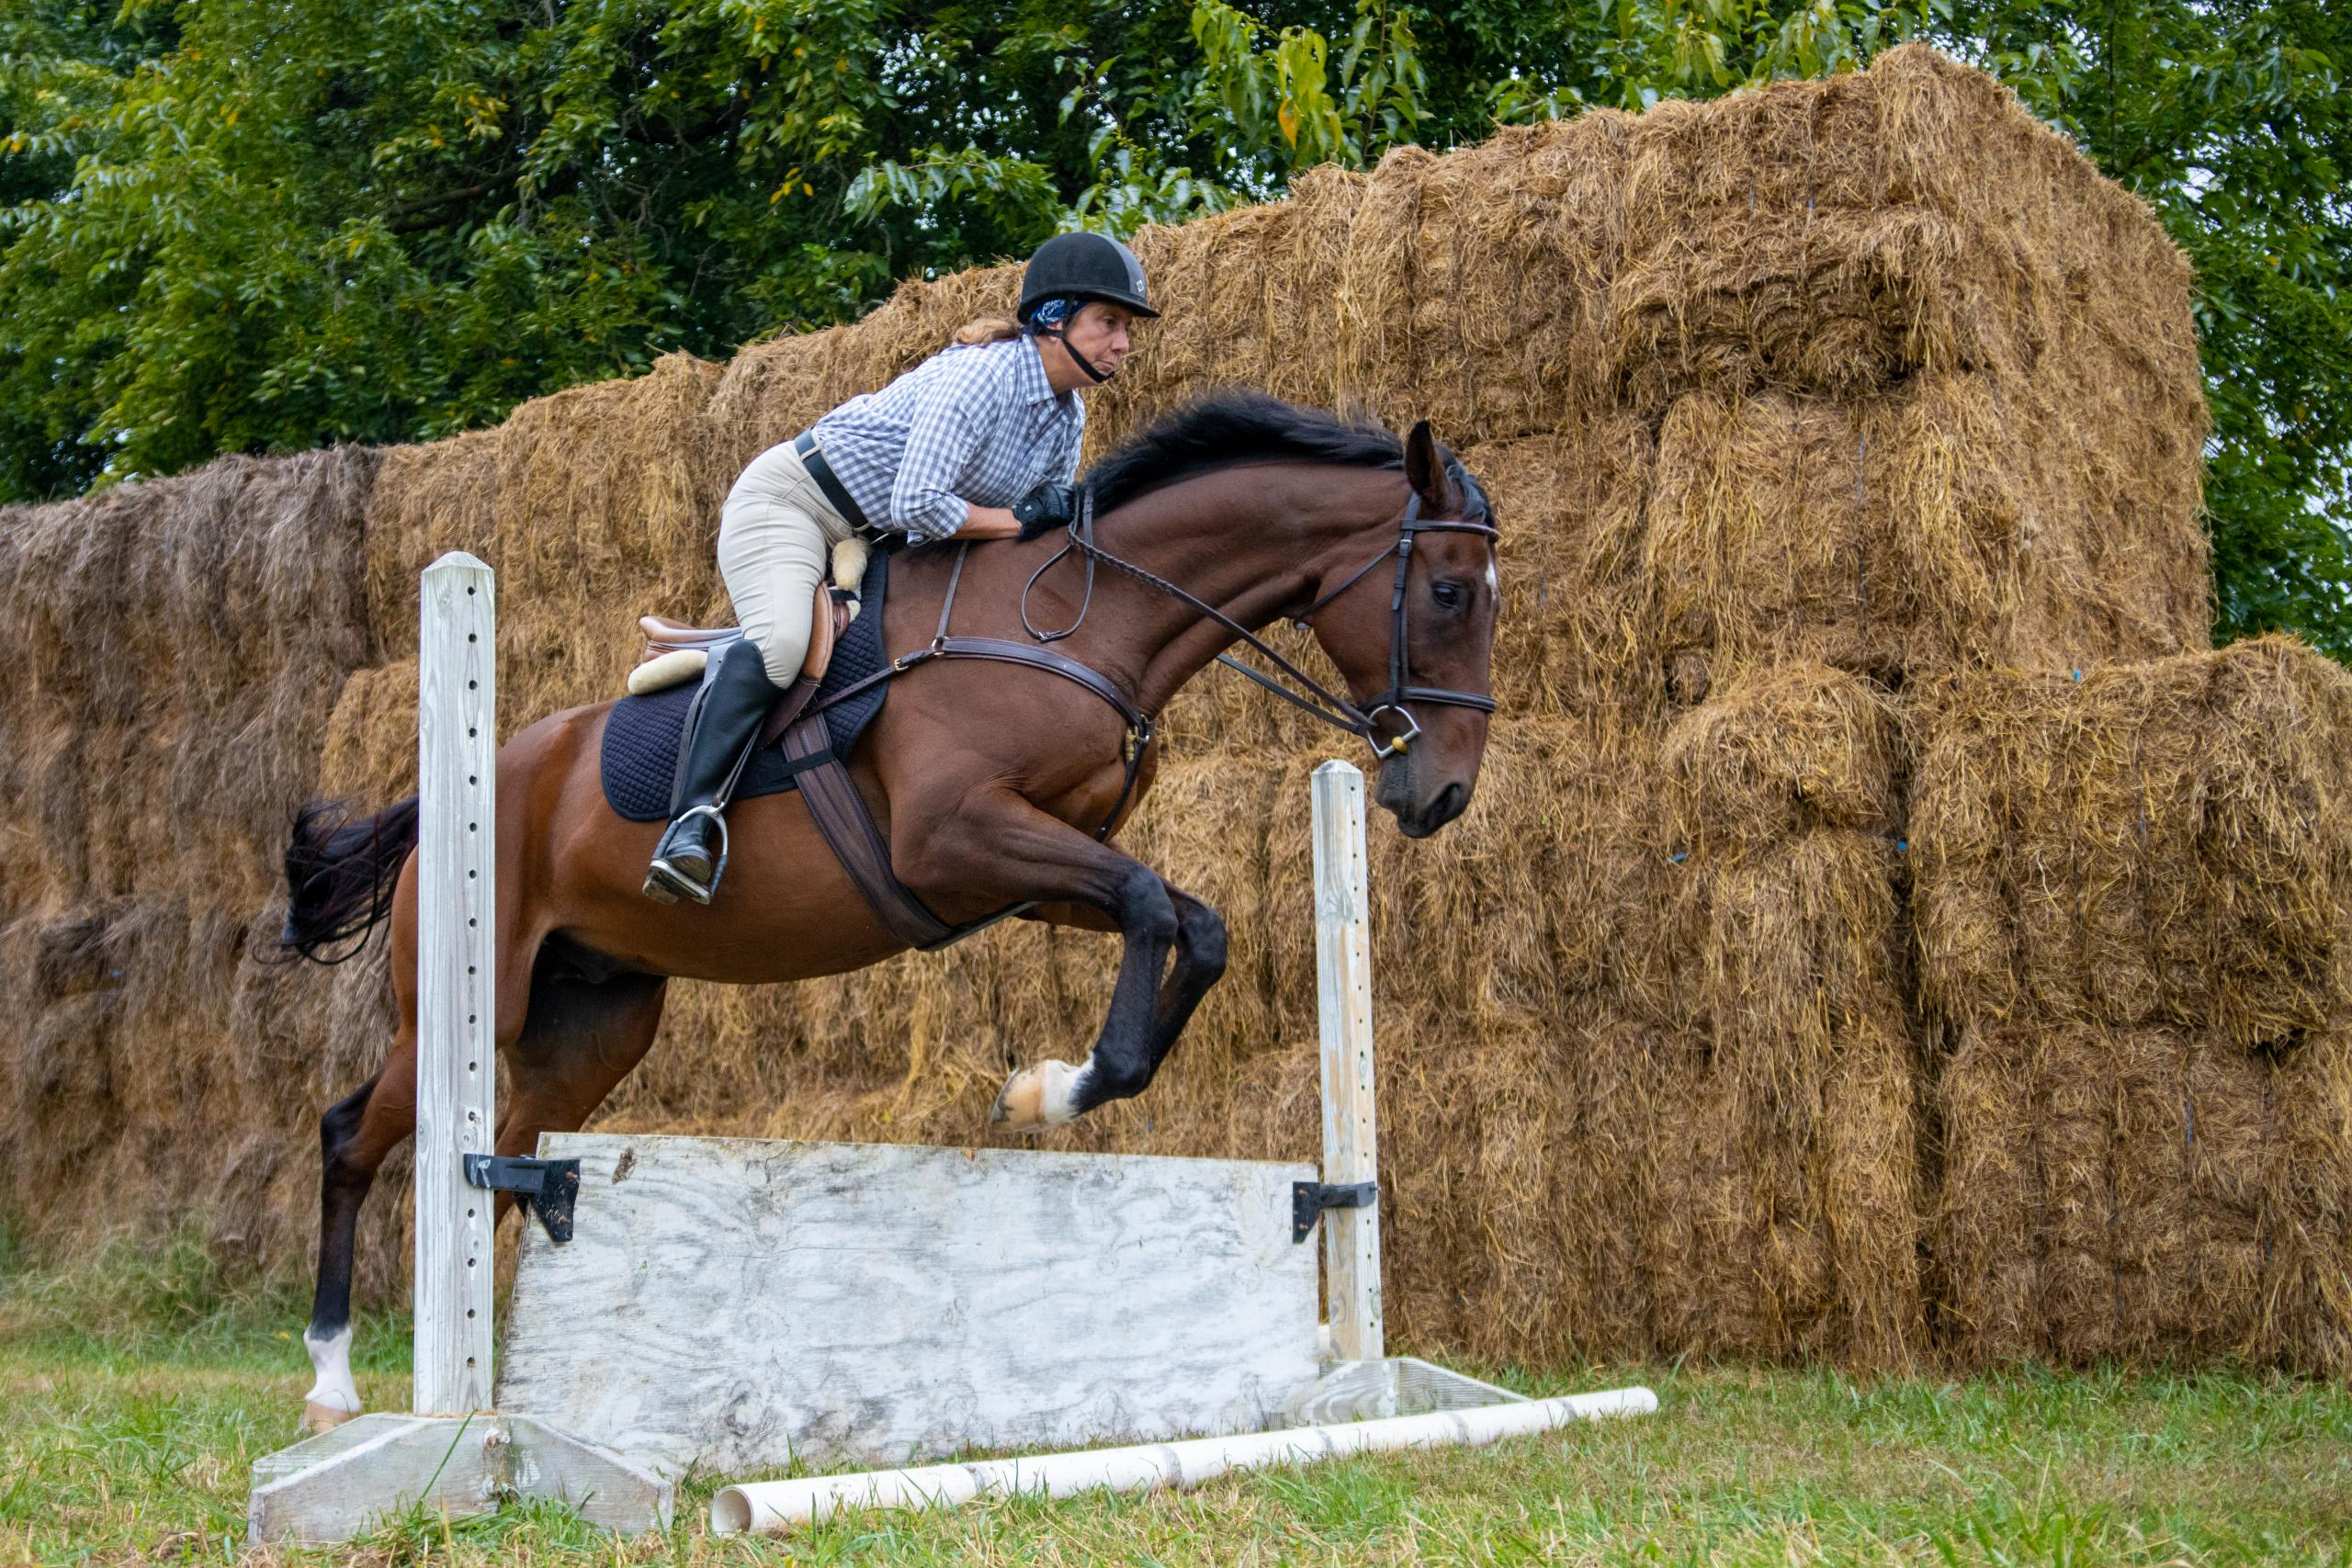 Former thoroughbred racehorse for sale, Night Vigil, is jumping over a wooden barrier in front of hay bales.